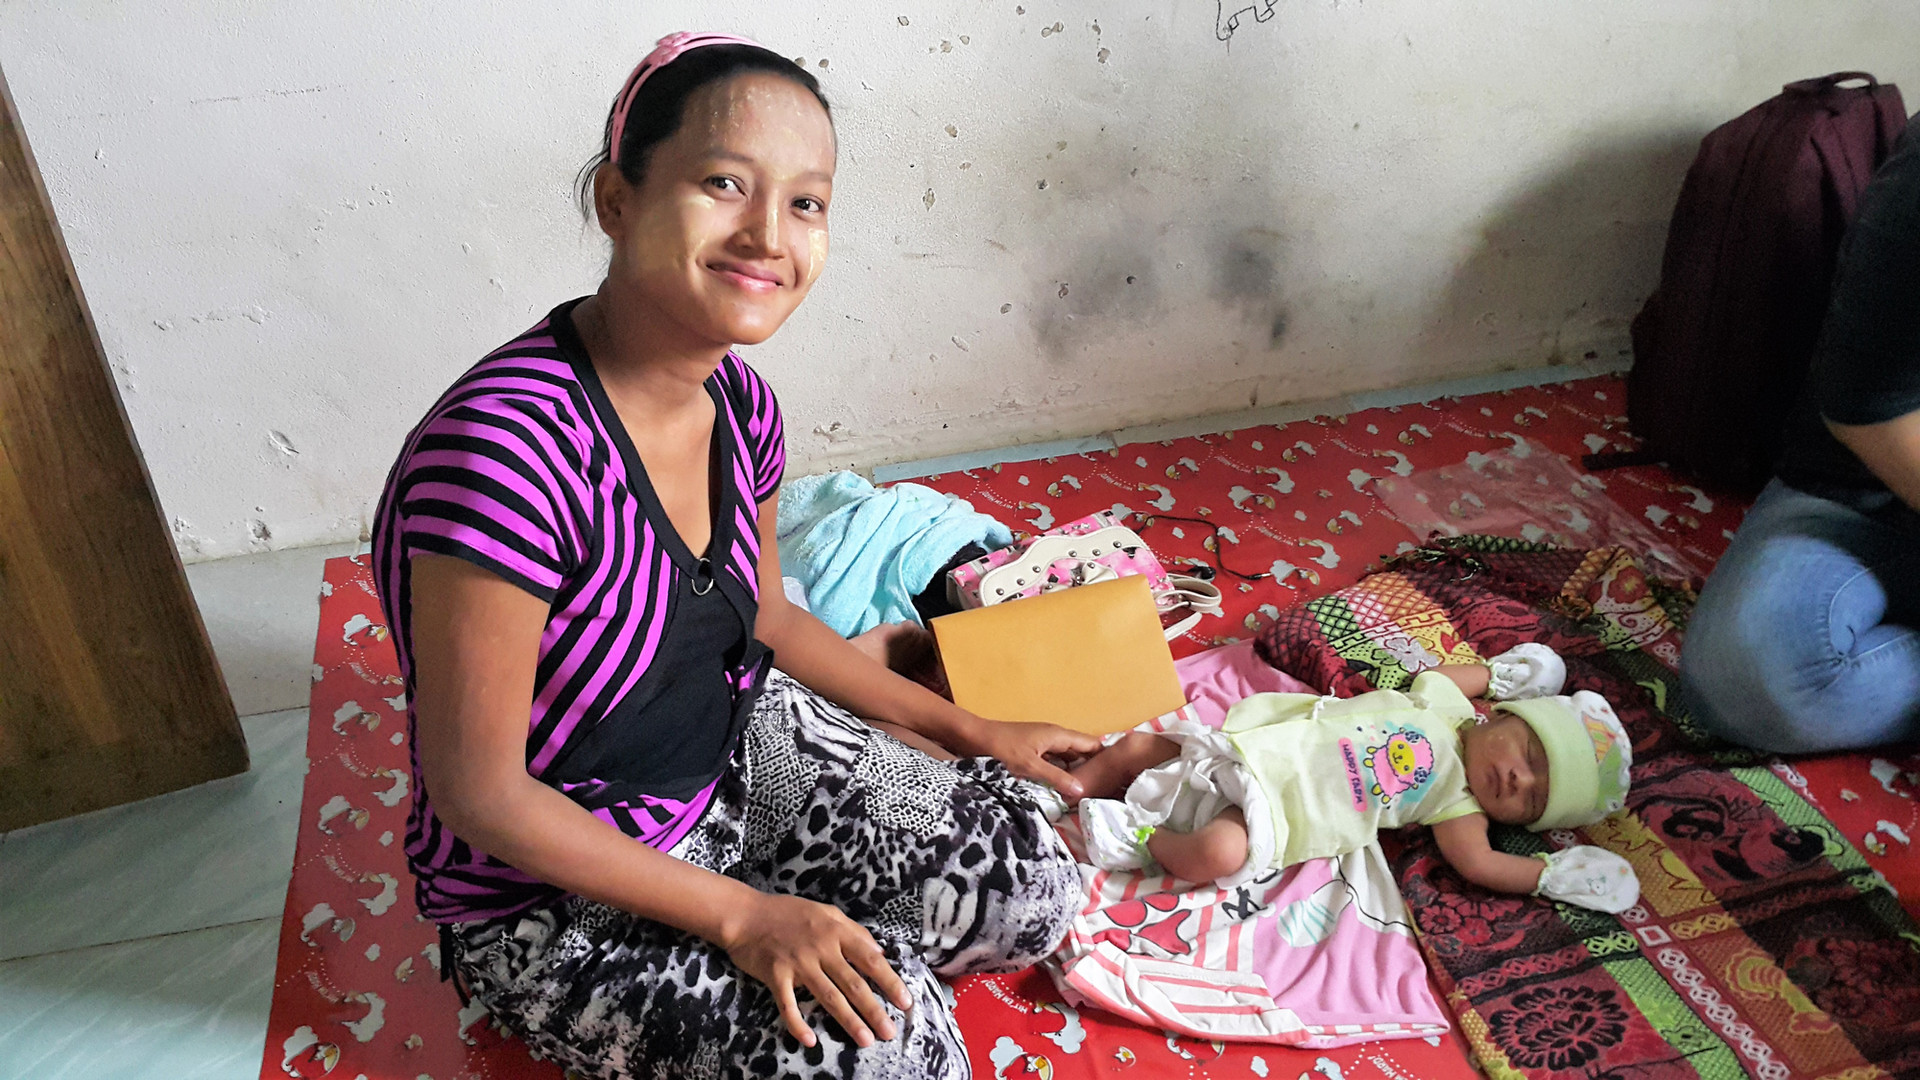 Working closely with women workers and their families helps us understand what more needs to be done to improve the lives and work of new moms